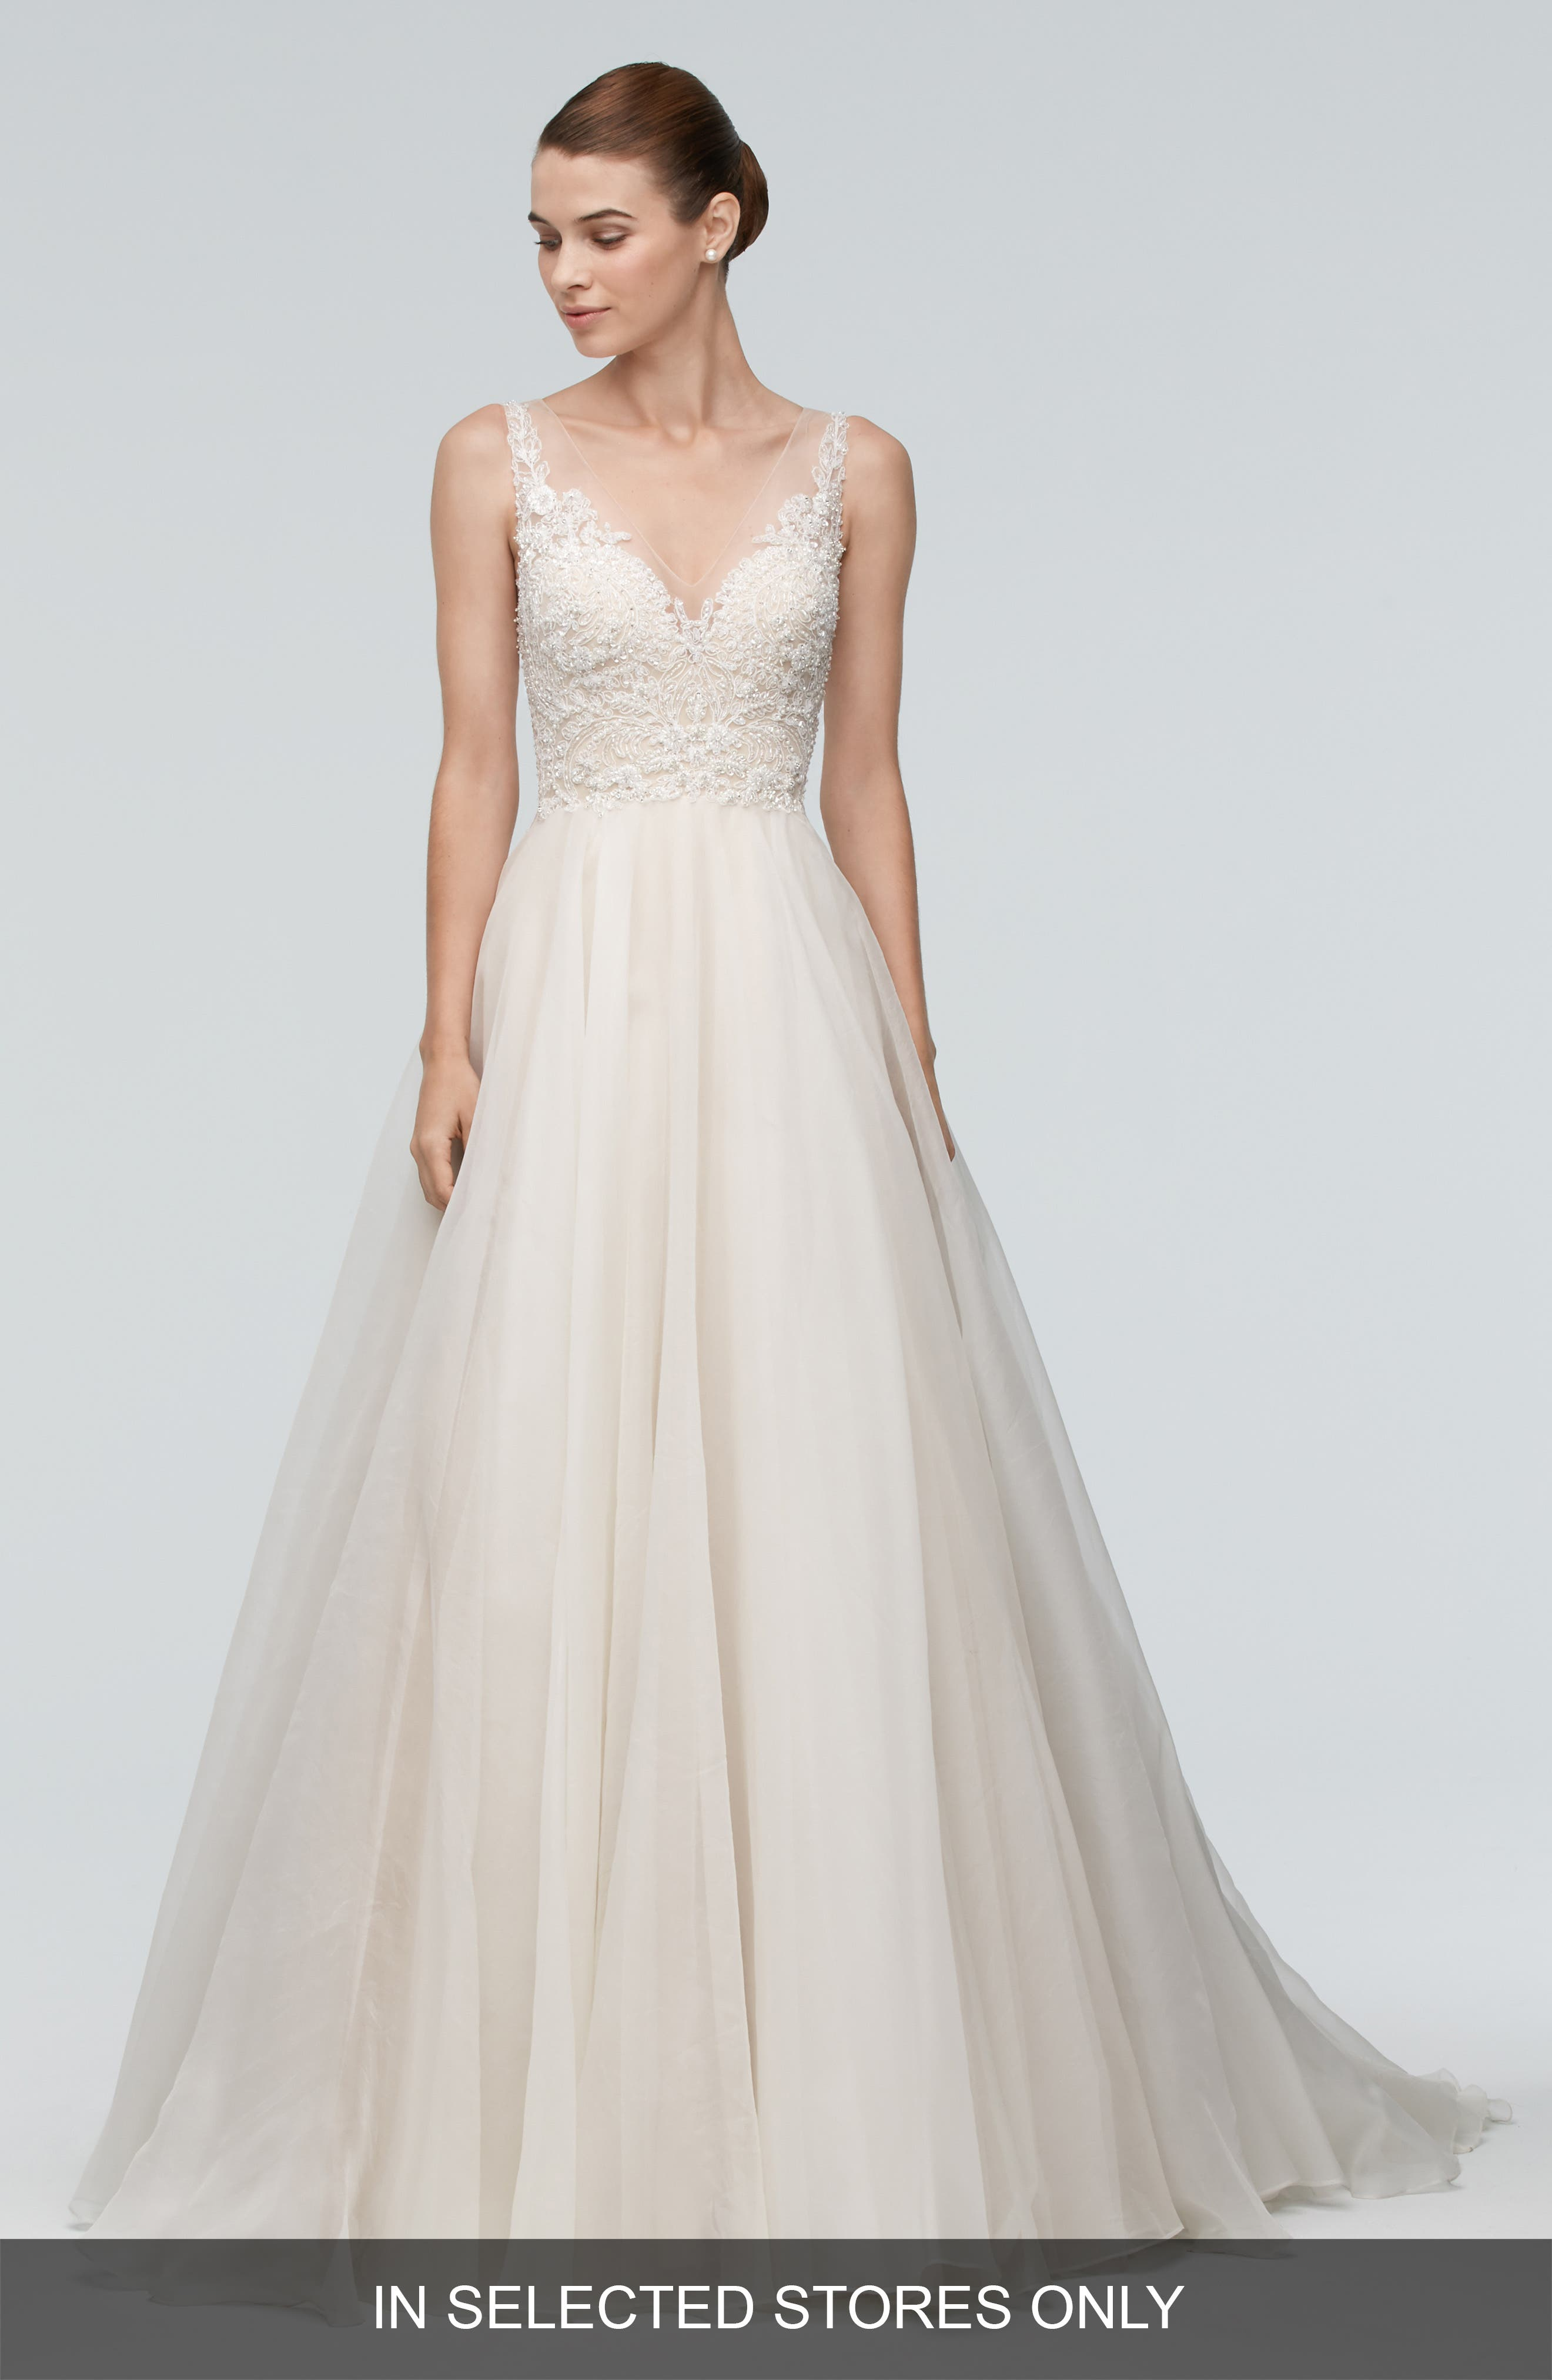 Janet Embellished Tulle & Organza A-Line Gown,                         Main,                         color, Ivory/Nude